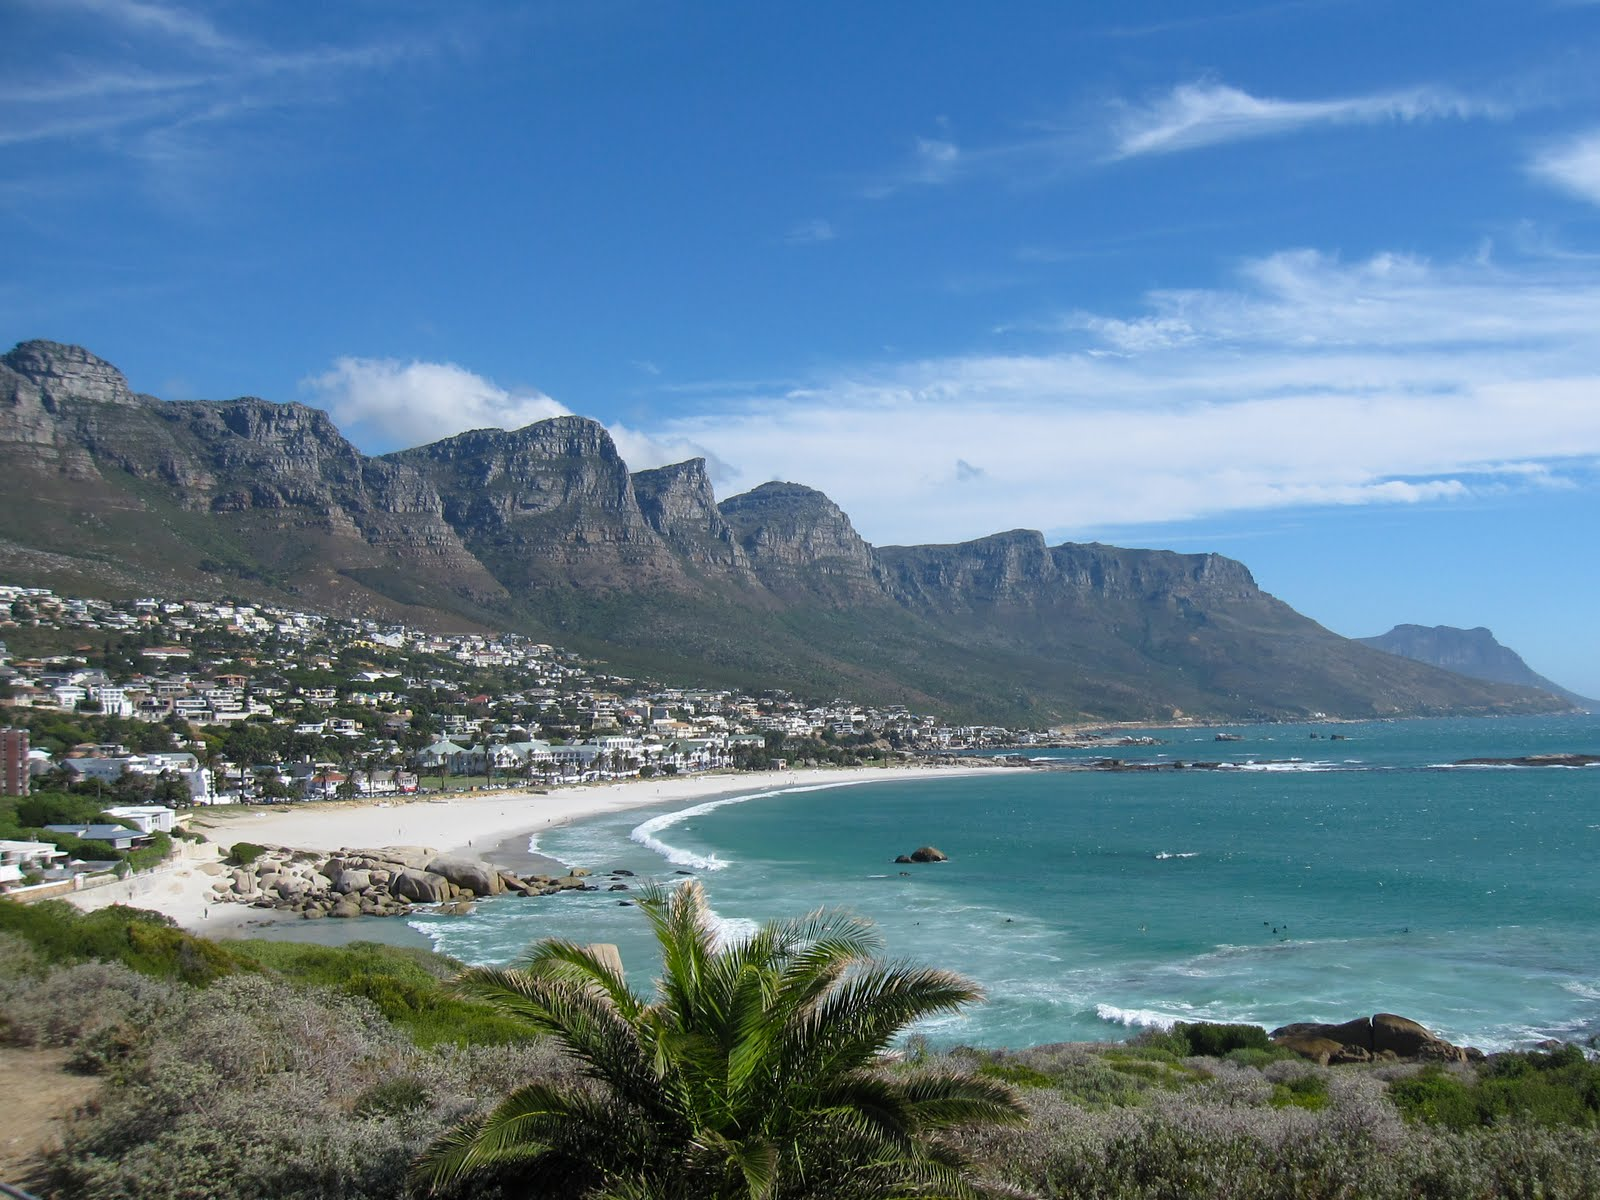 The 12 Apostles Mountains of Cape Town